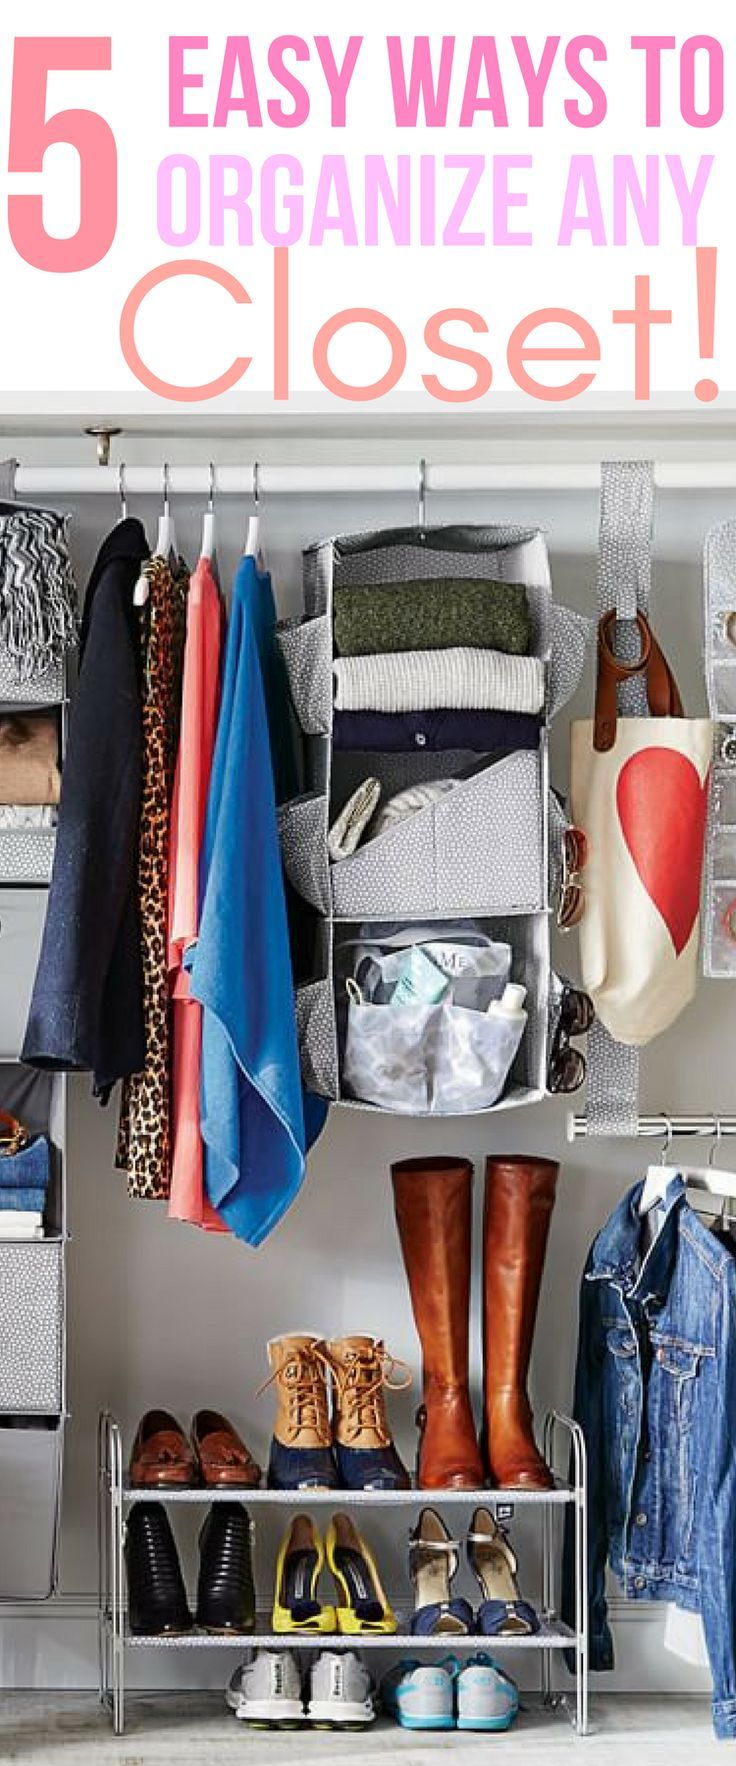 5 Secret Ways To Organize Your Closet